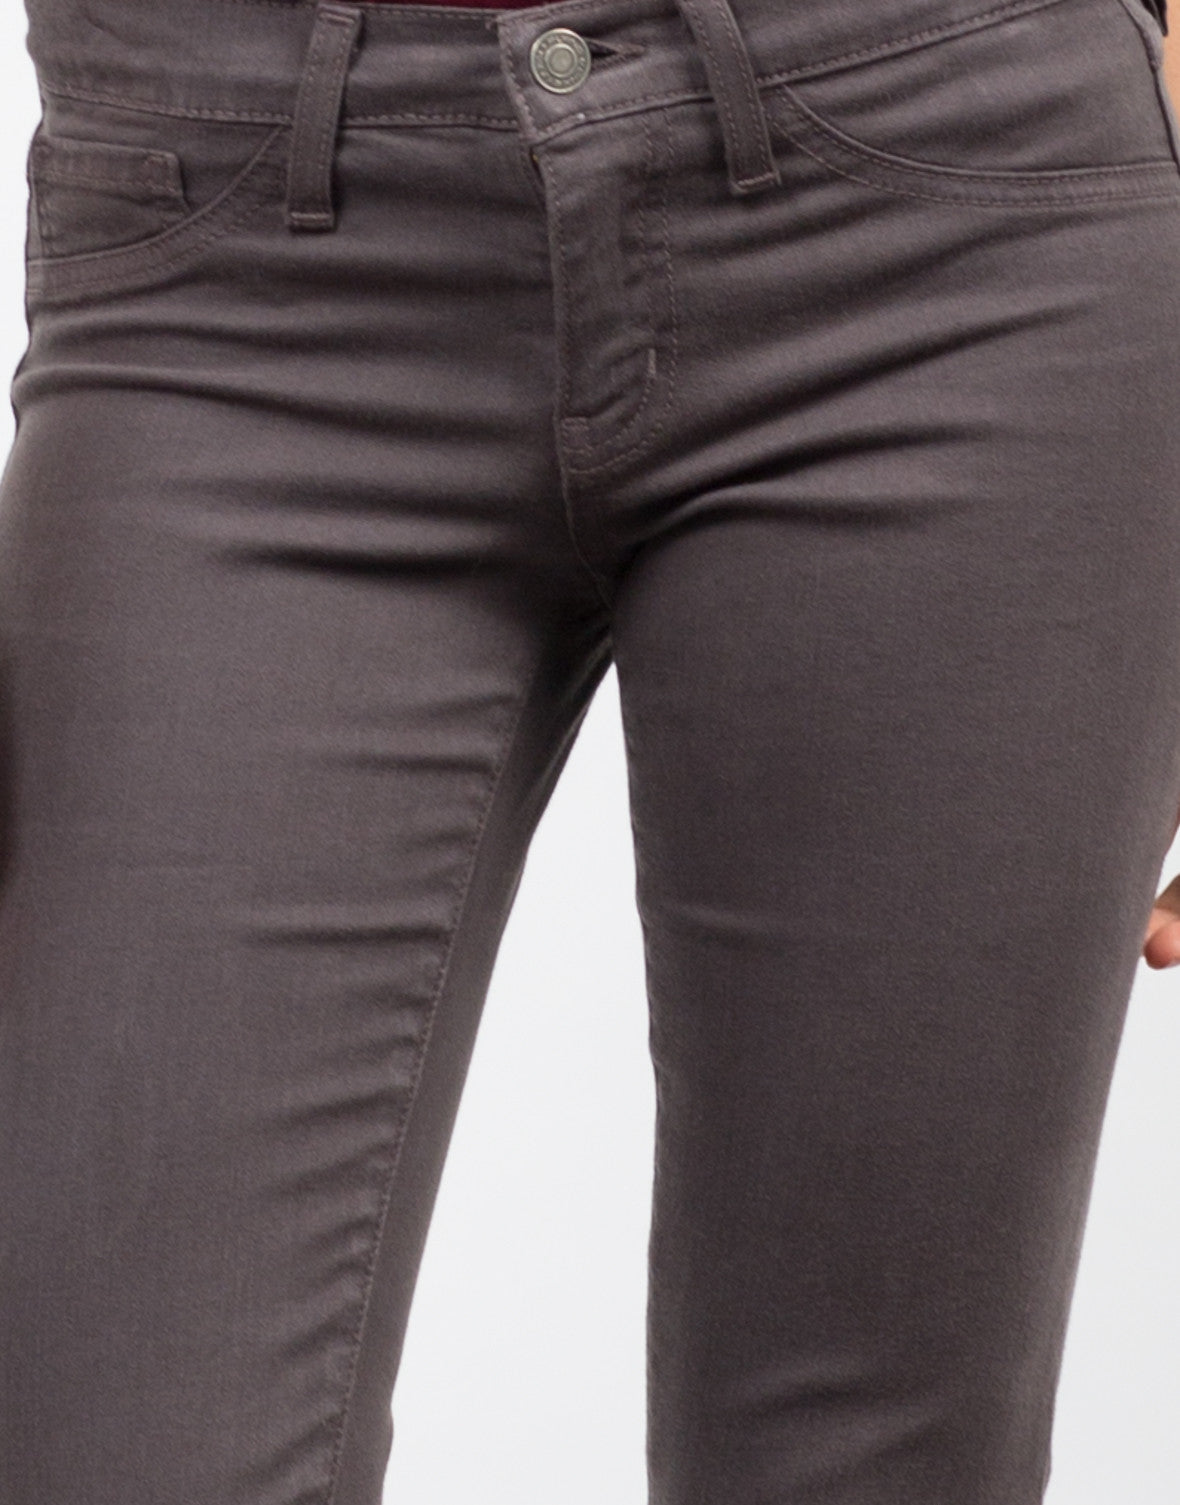 Detail of Ex Boyfriend Skinny Jeans